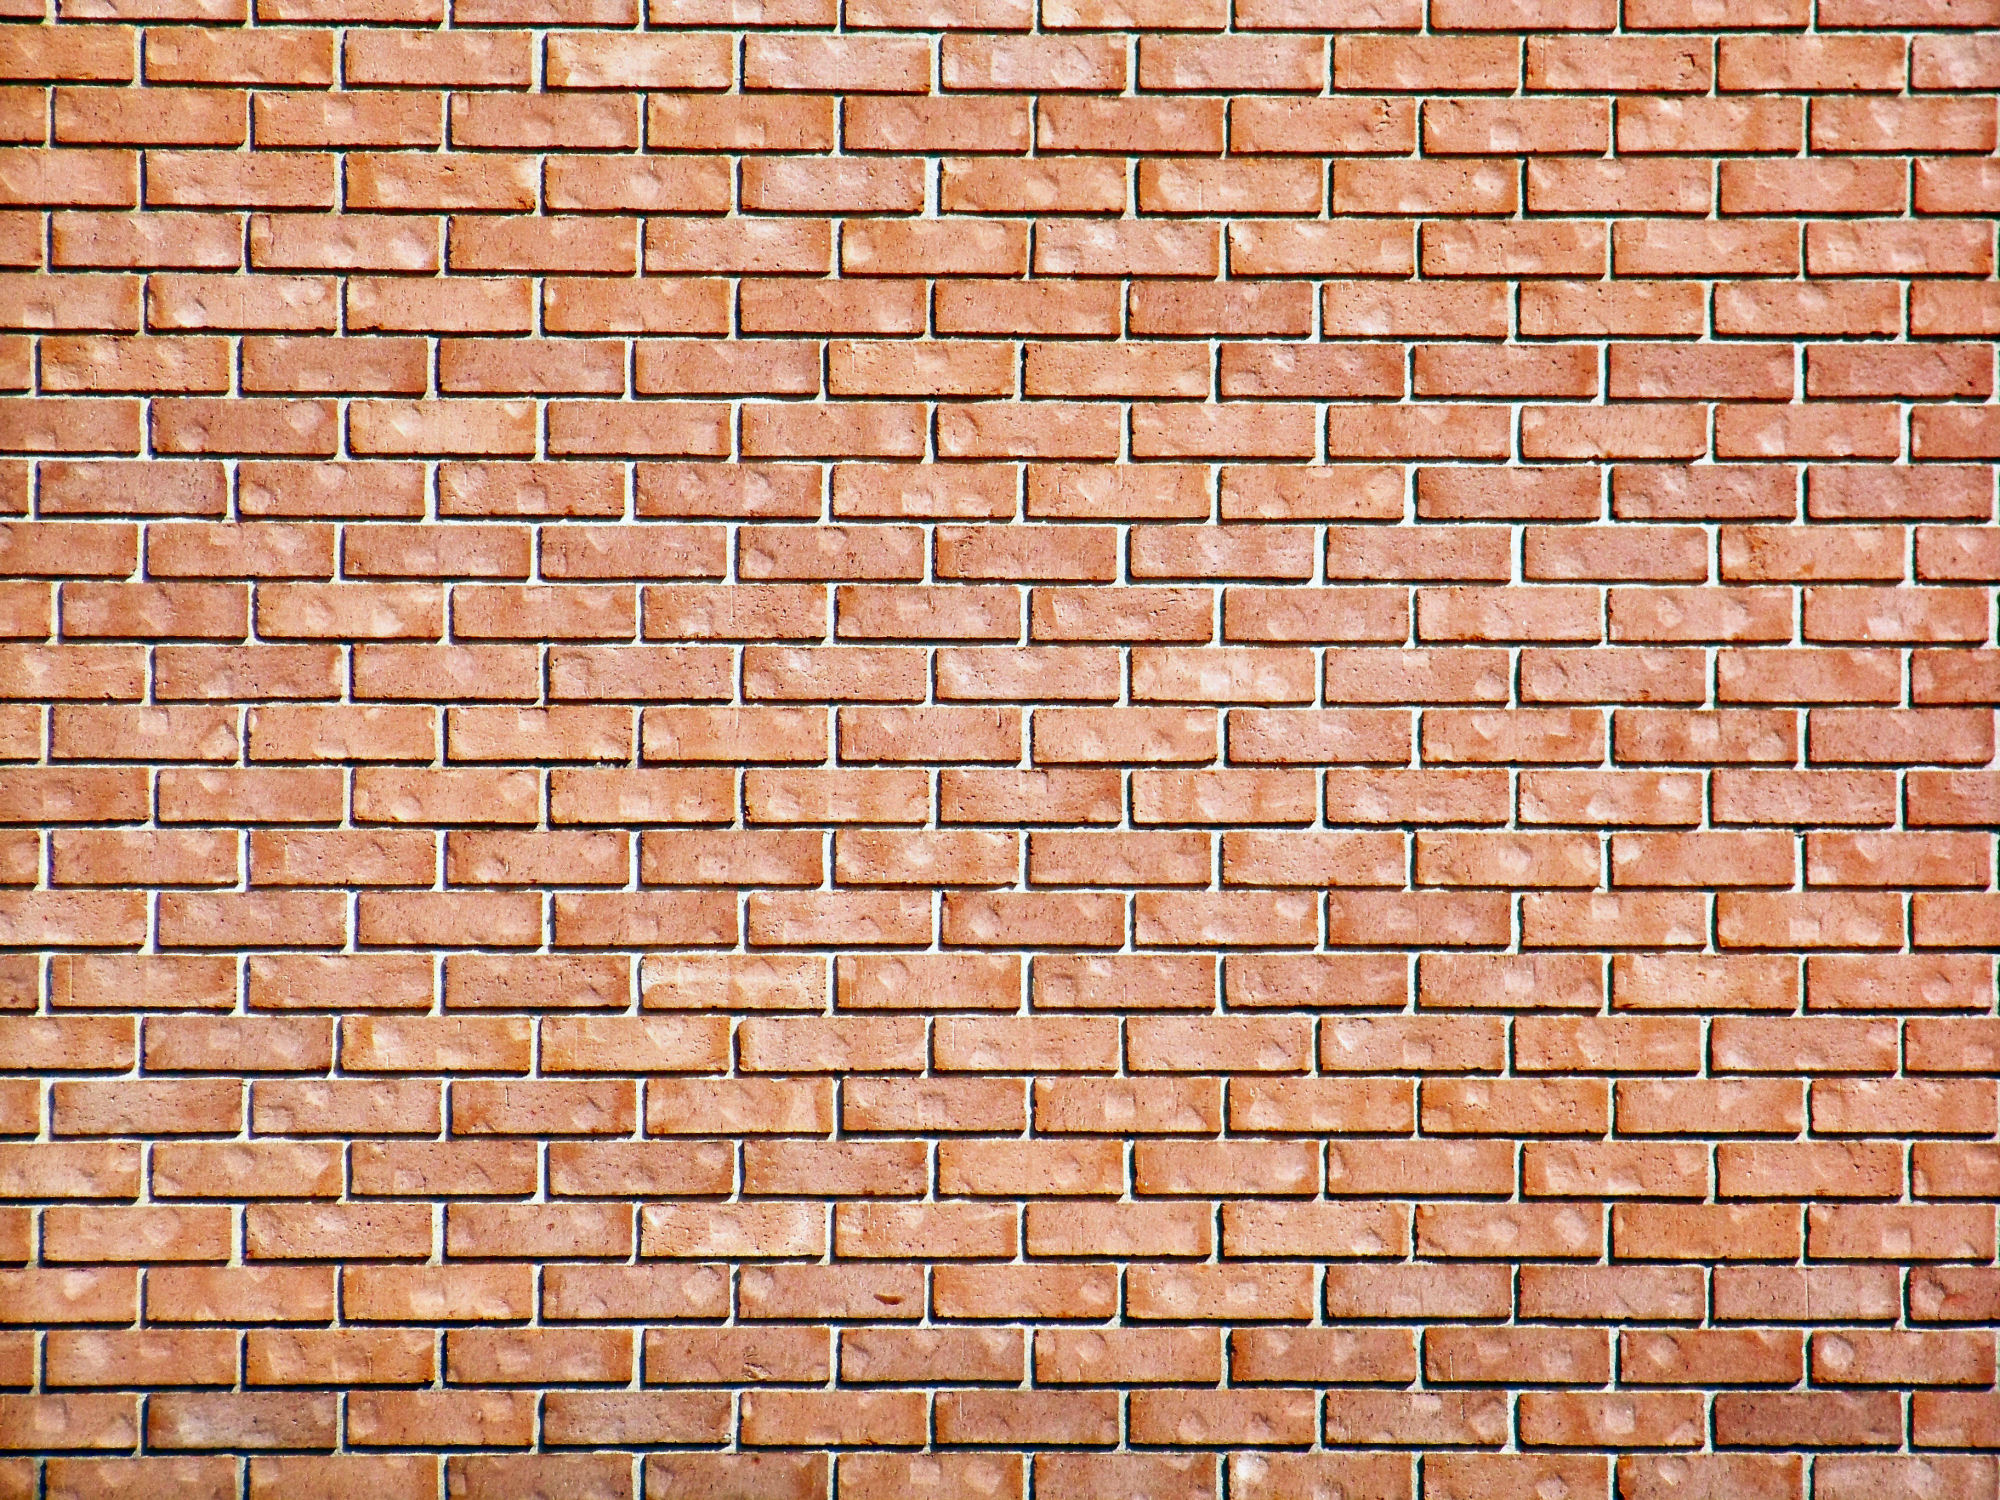 brick wall, texture, bricks, brick wall texture